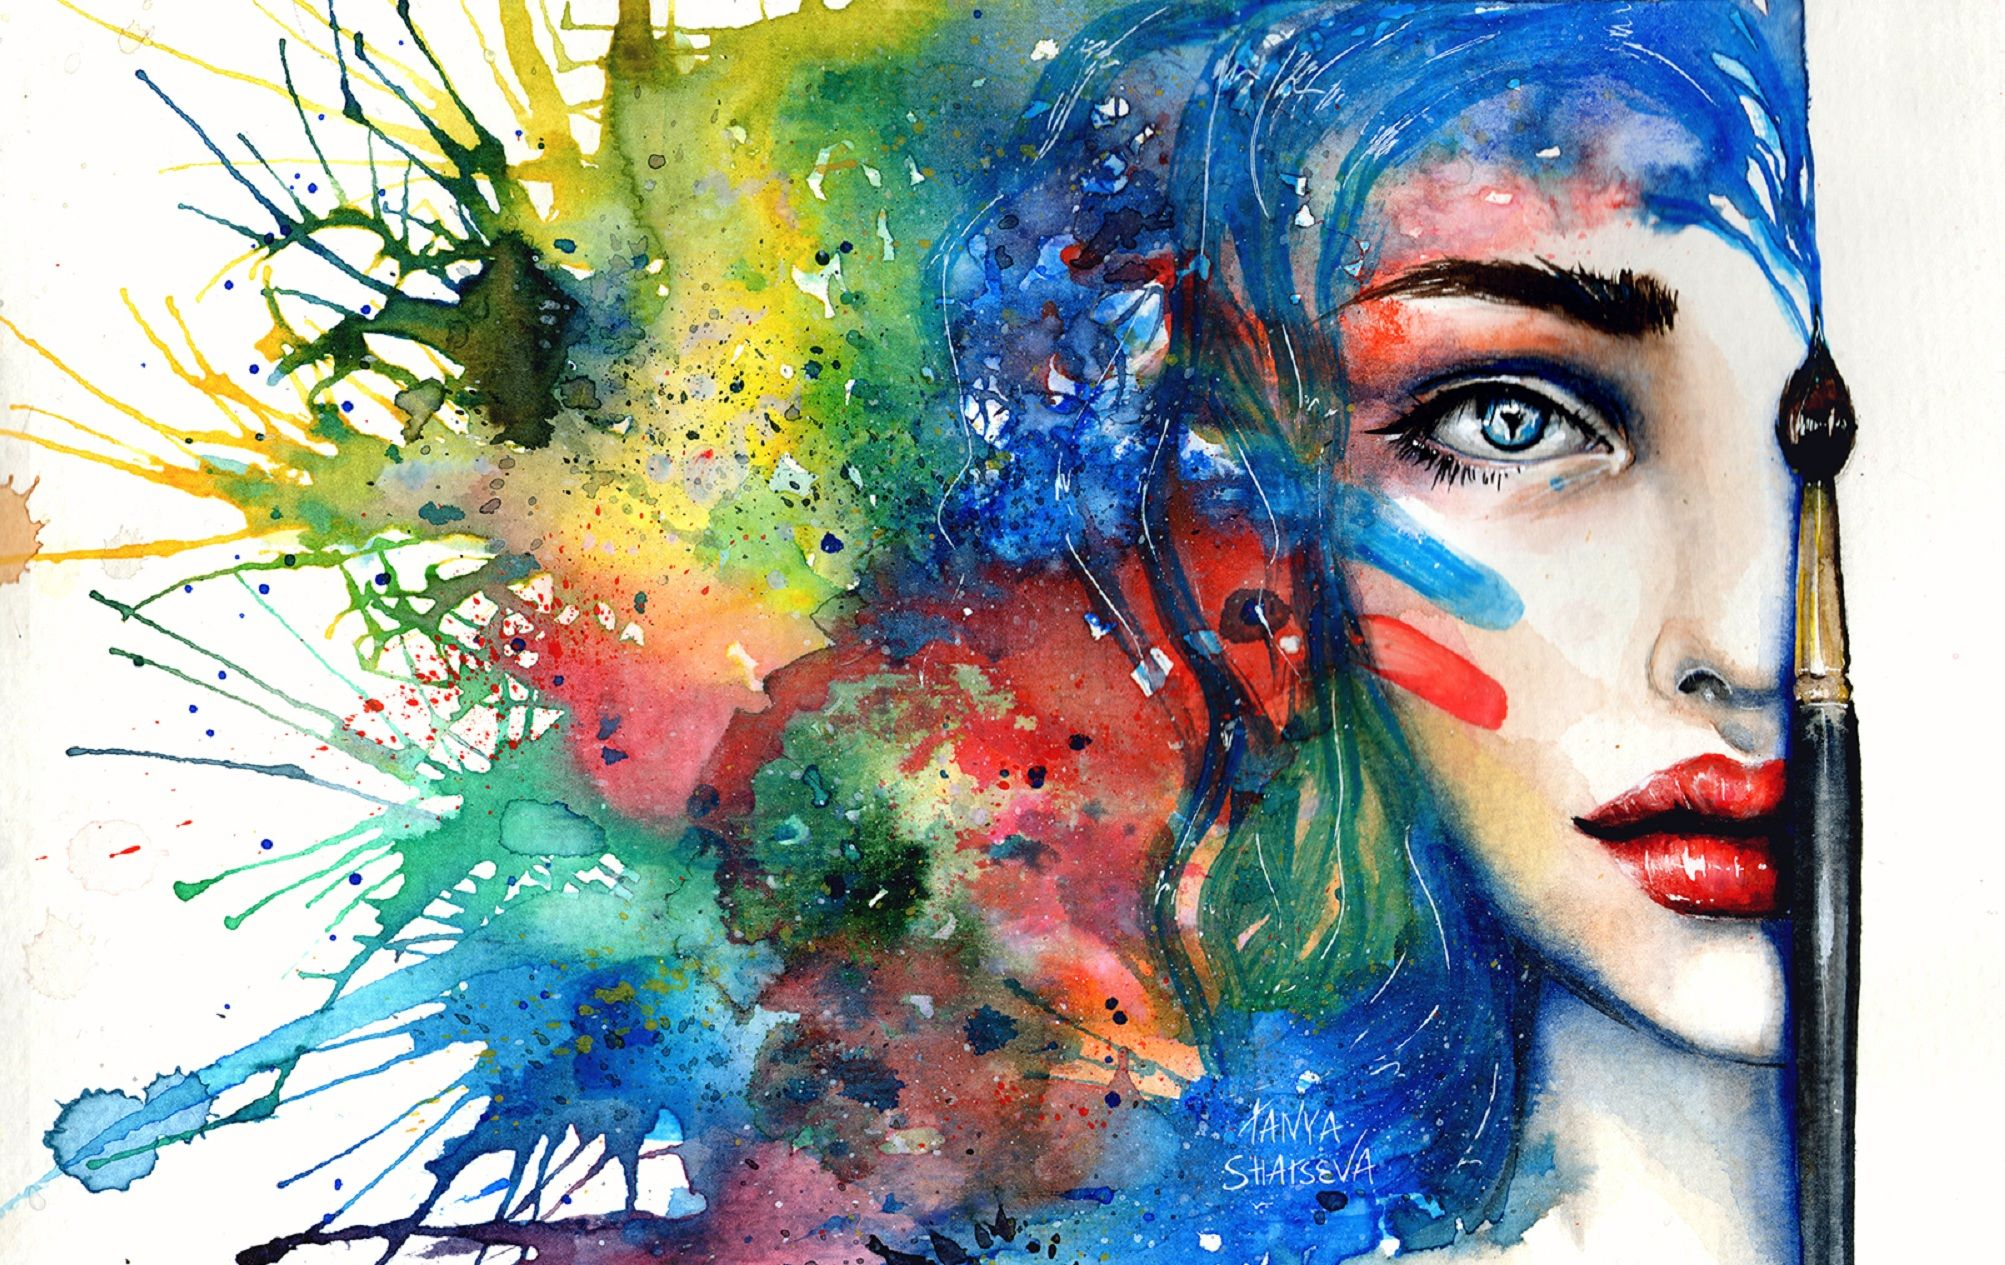 Beauty Painting Desktop Background Wallpaper Free Watercolor